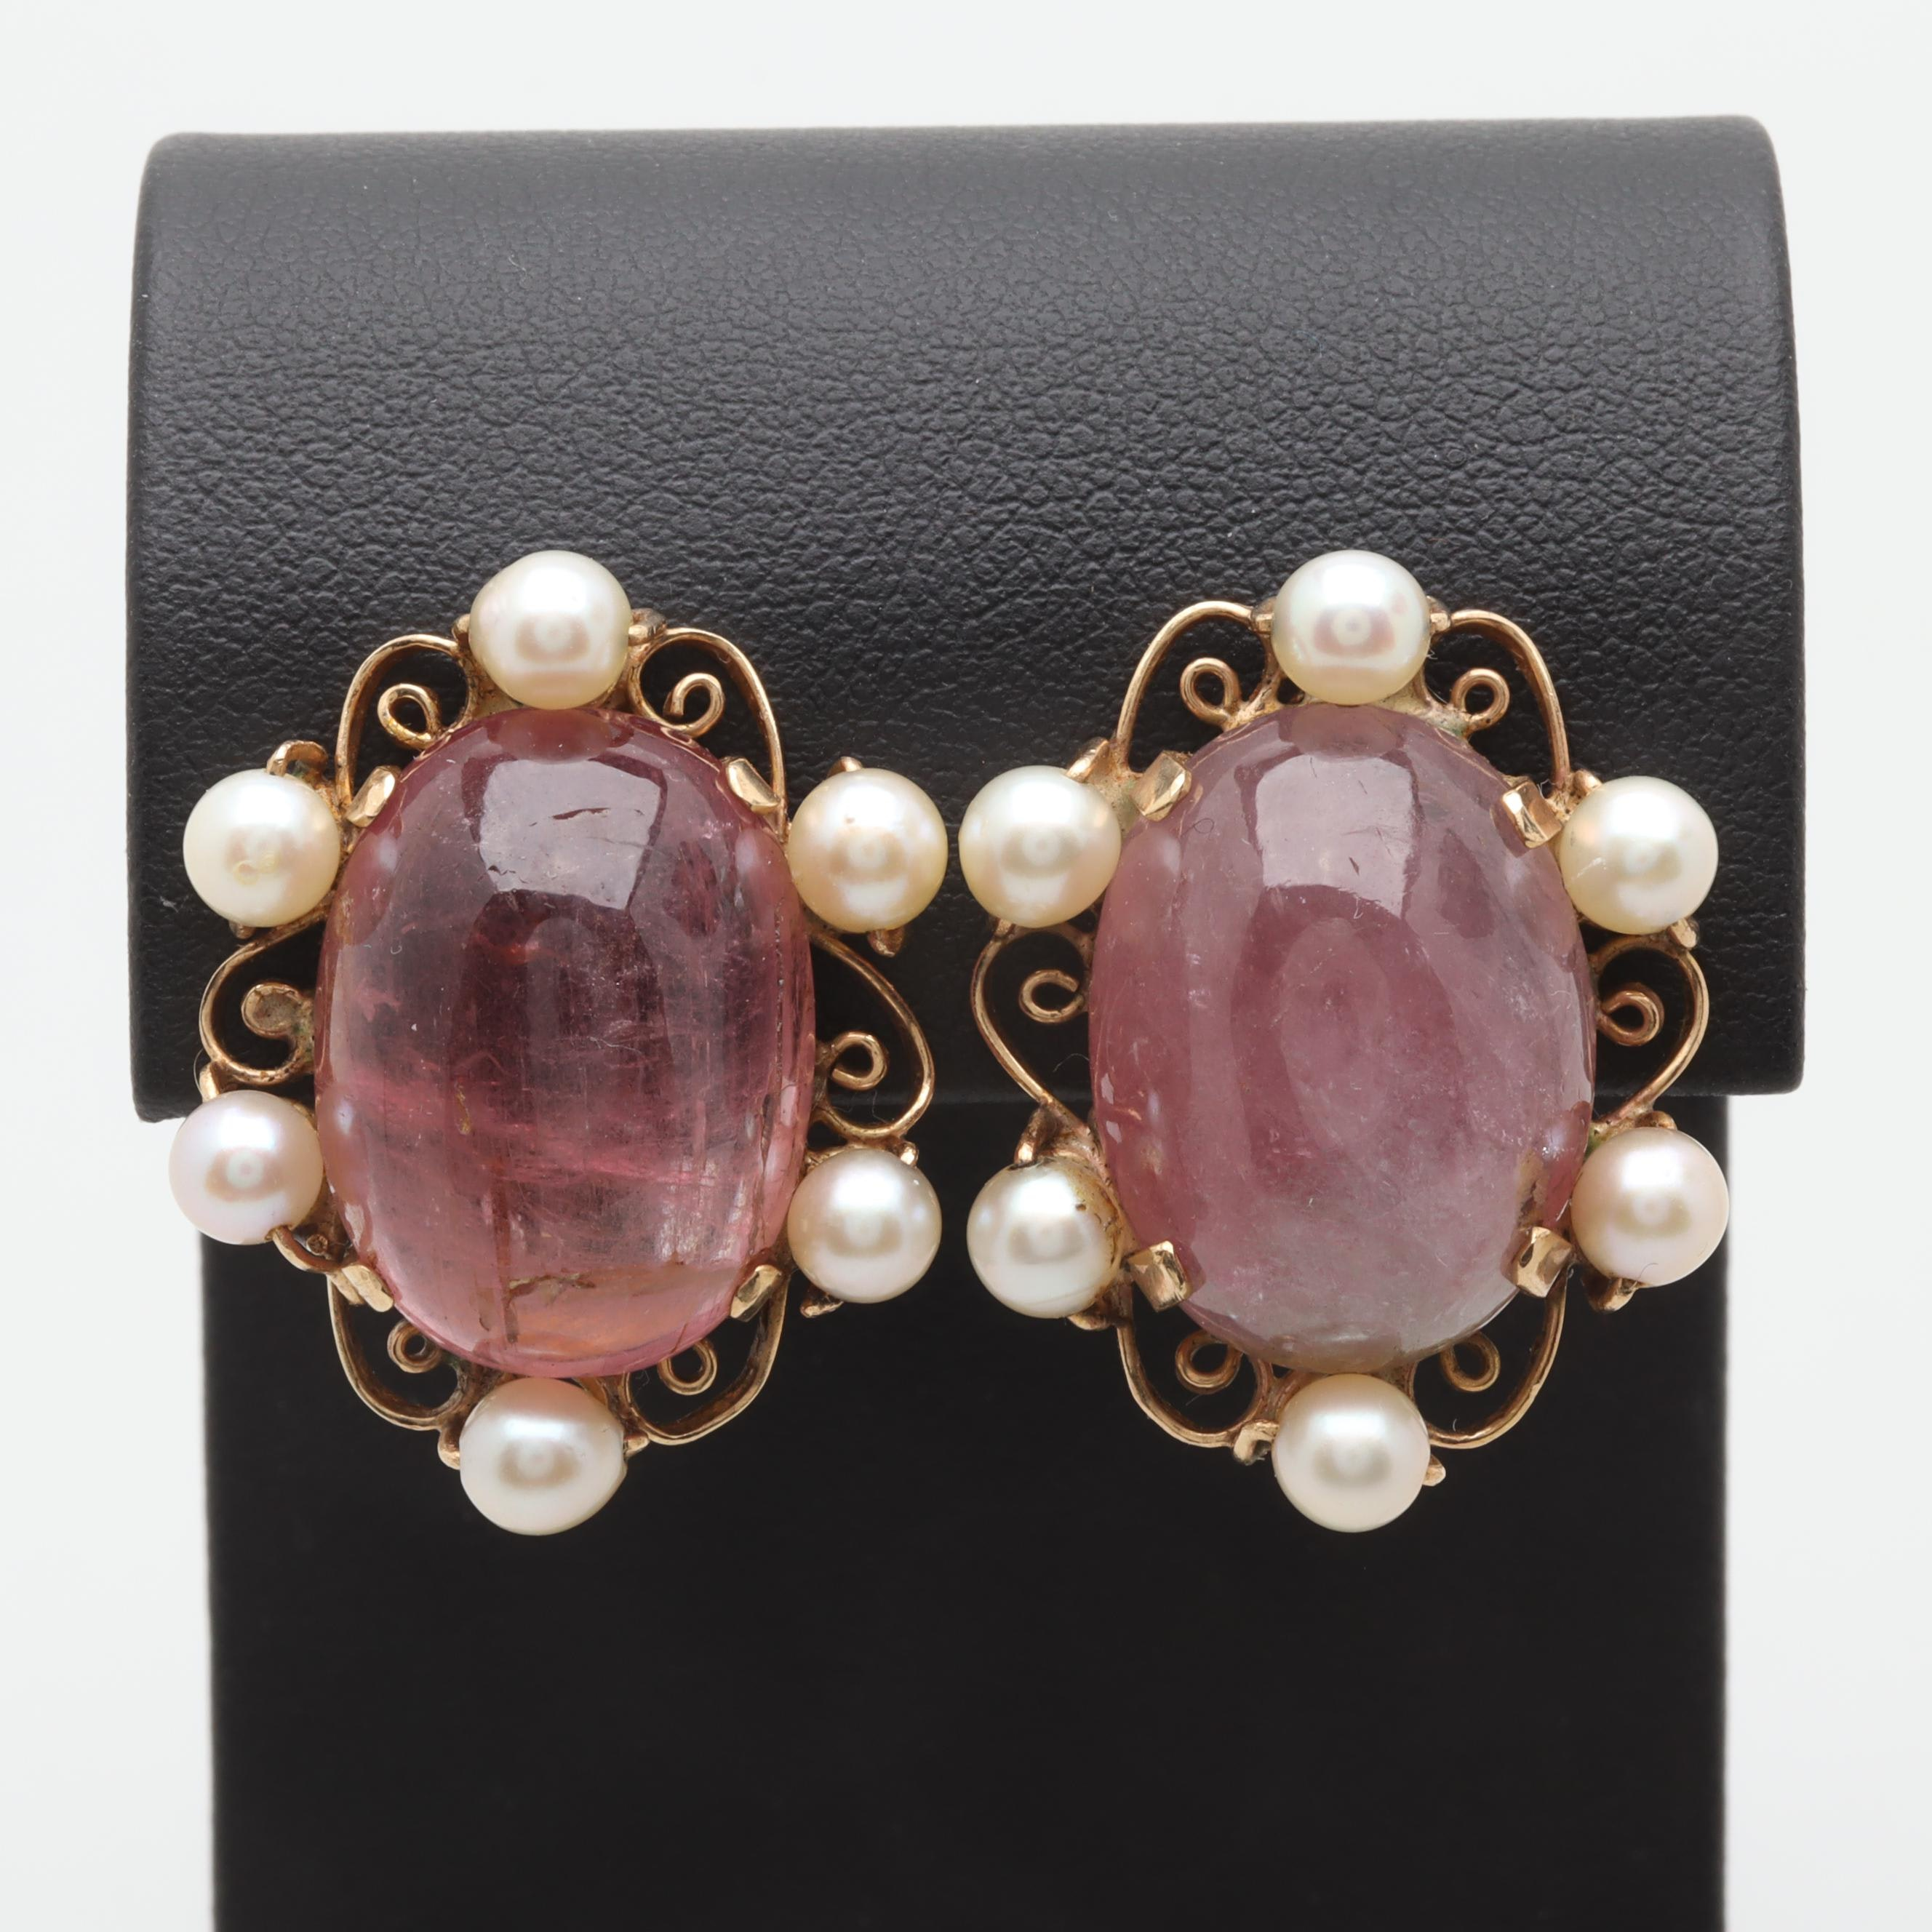 14K Yellow Gold 40.60 CTW Pink Tourmaline and Cultured Pearl Earrings